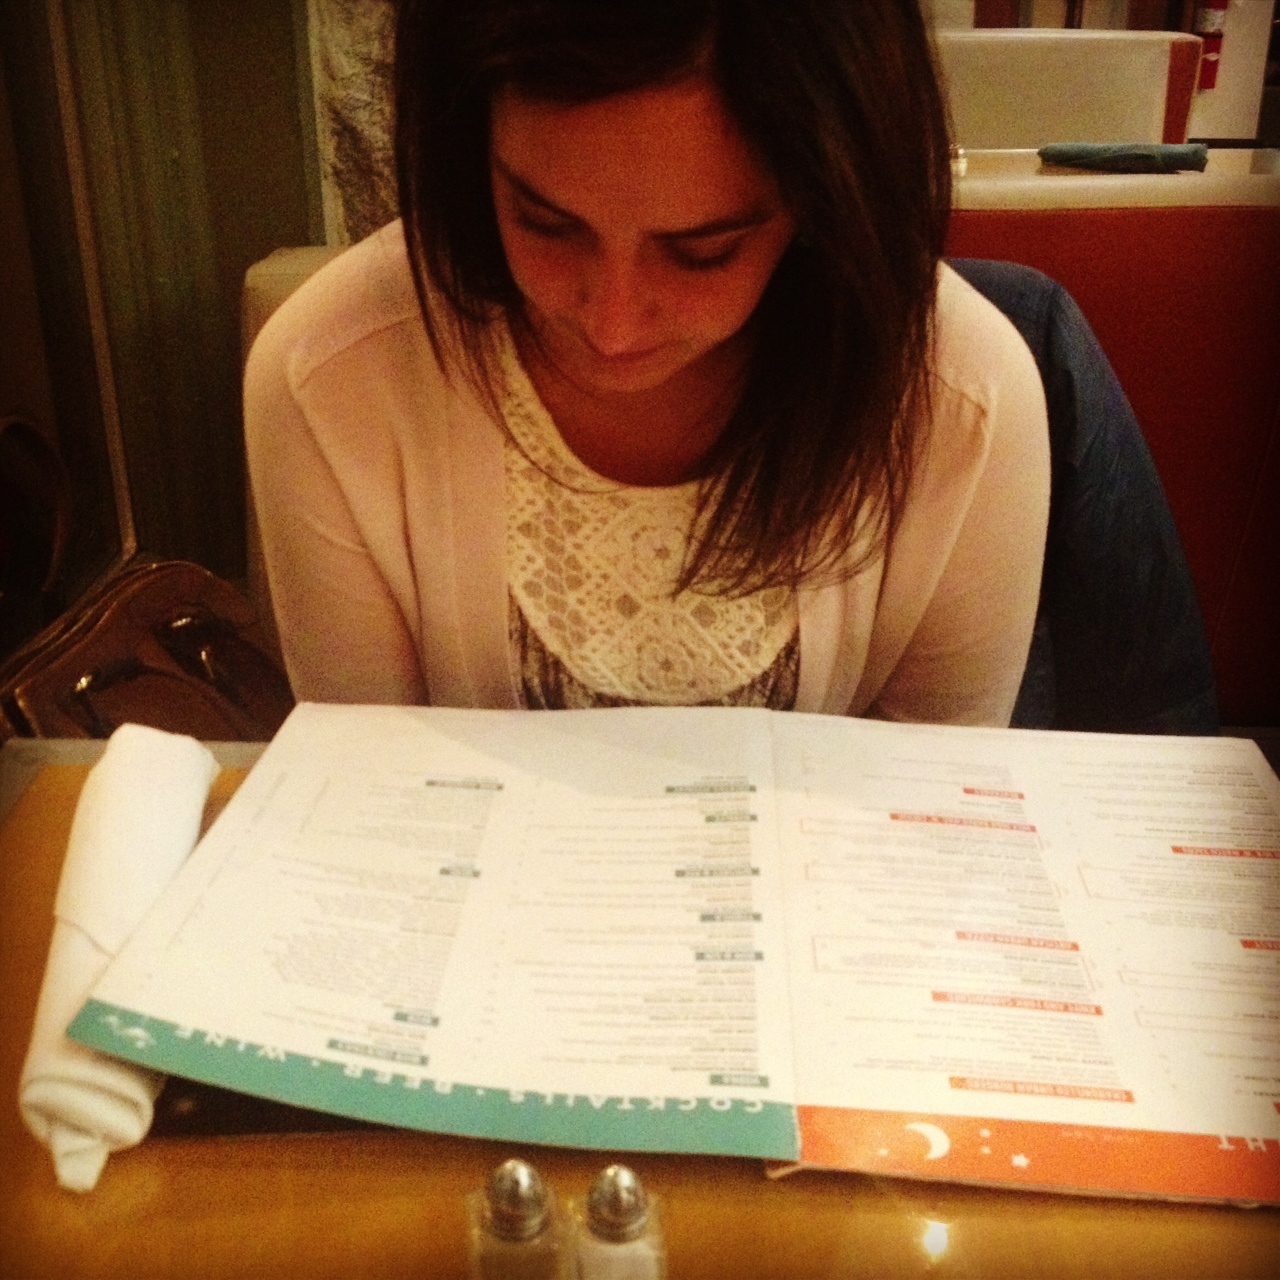 The menu is waaaay too big, according to what I know from watching Gordon Ramsay's 'Kitchen Nightmares'.